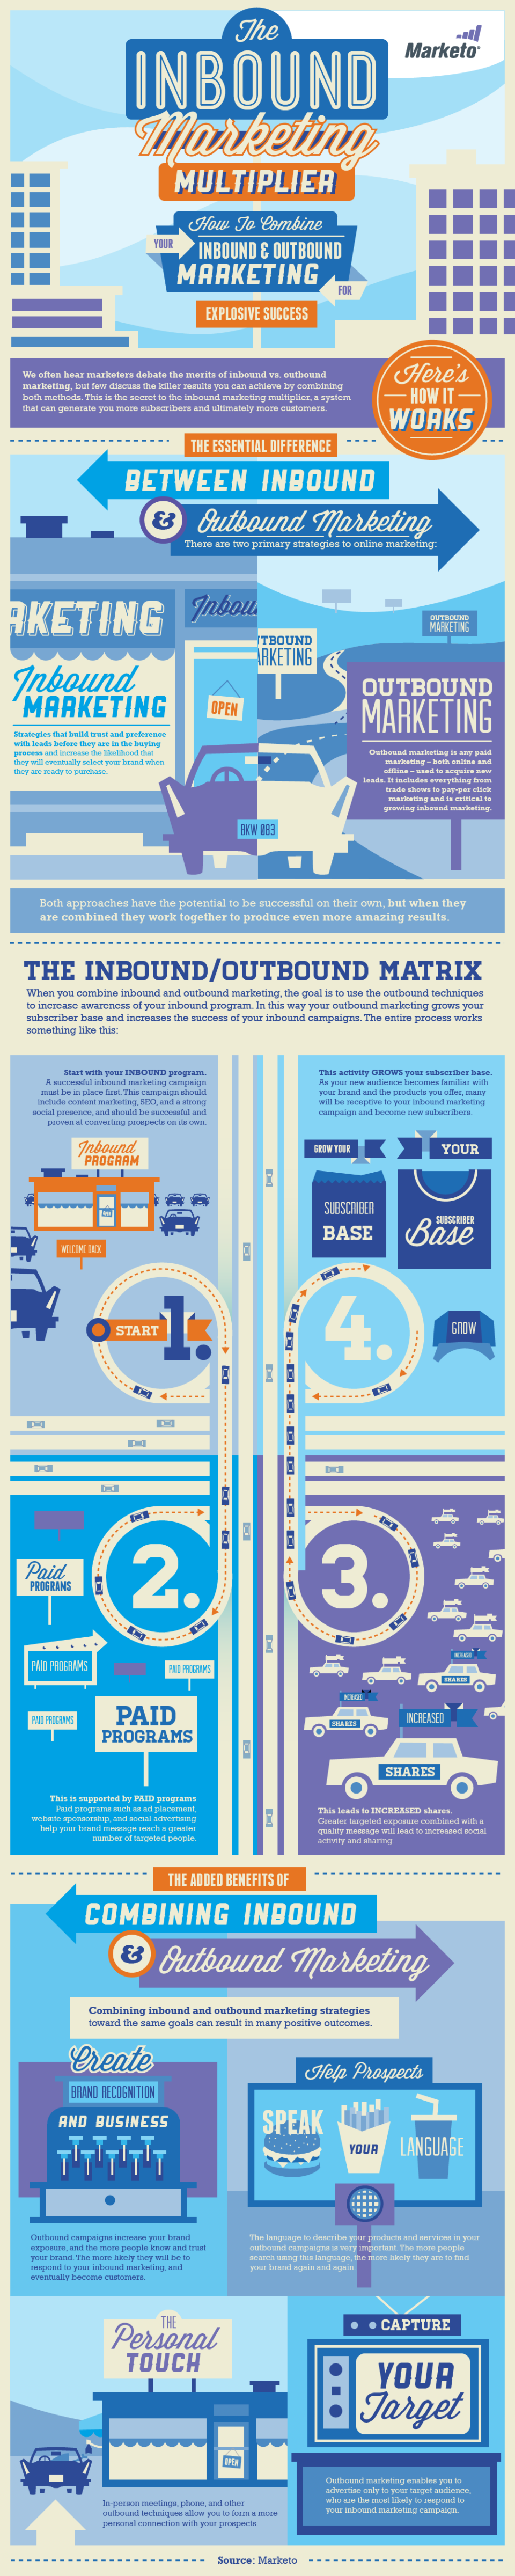 The Inbound Marketing Multiplier Infographic by Marketo